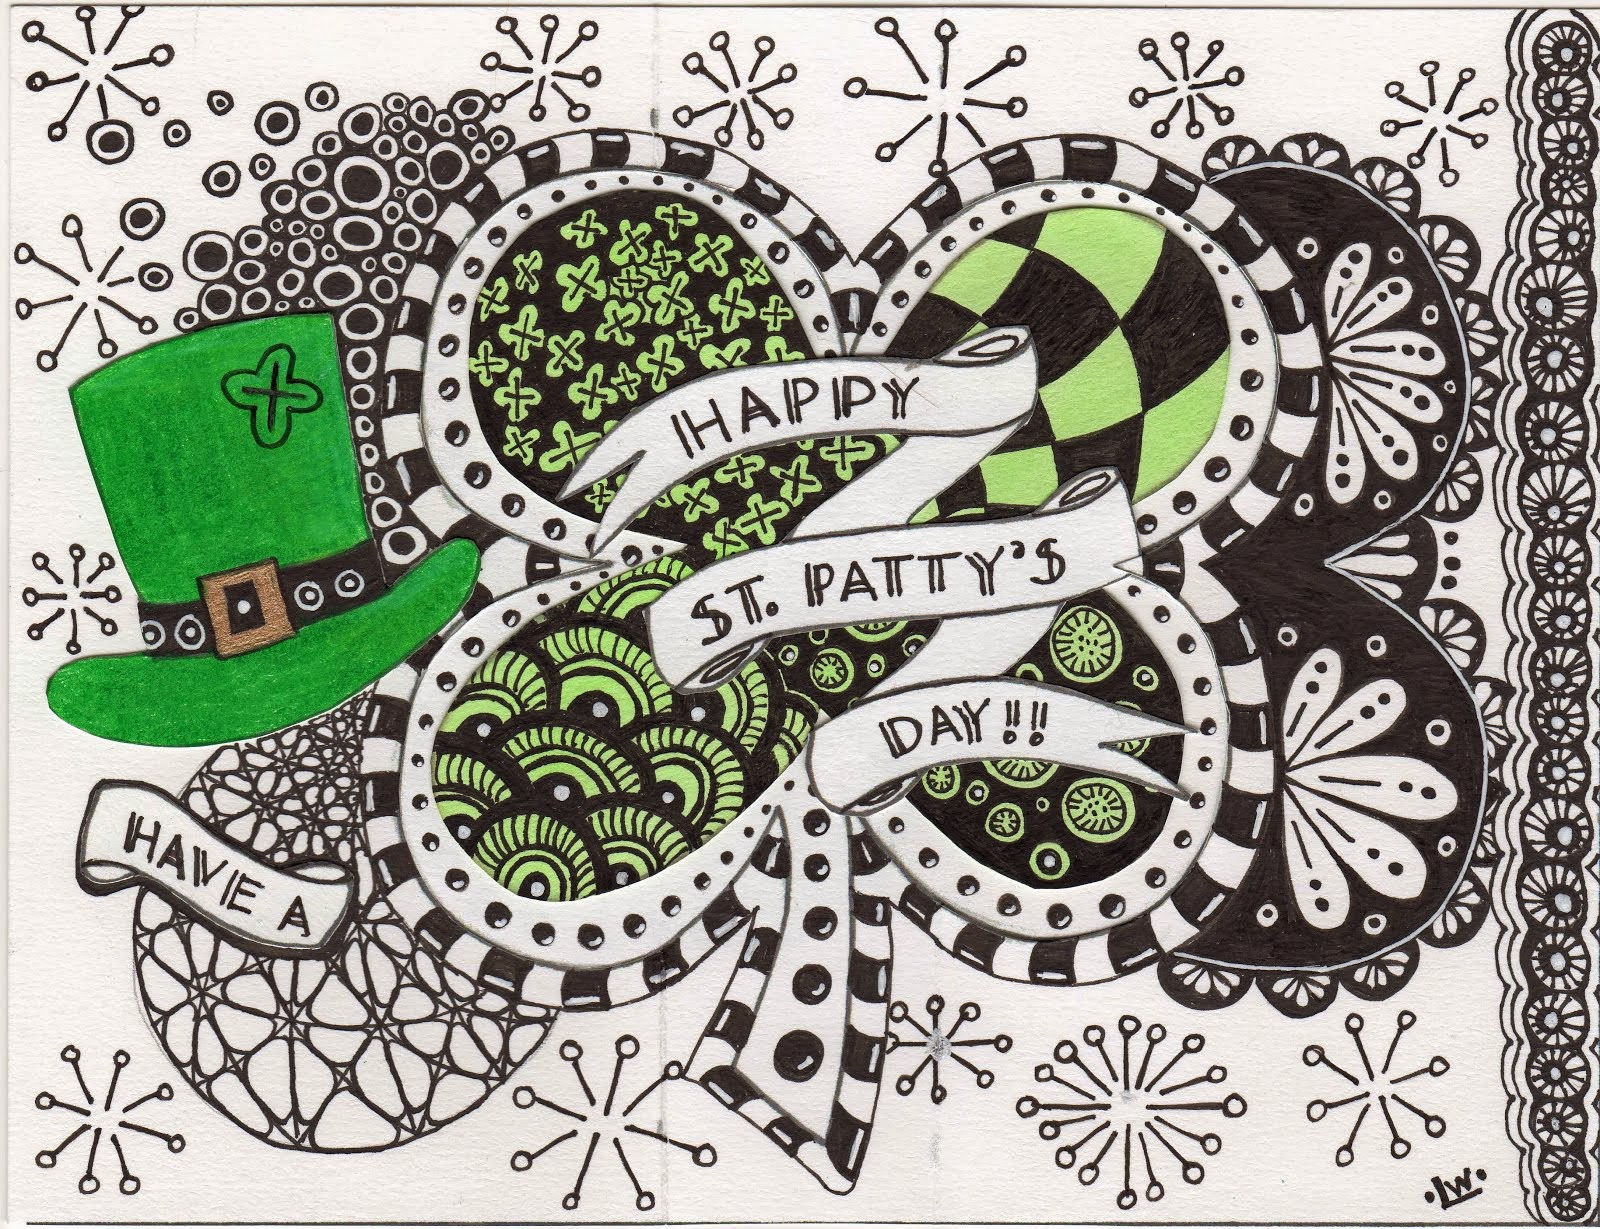 Tangle Your Own - St. Patrick's Day Card